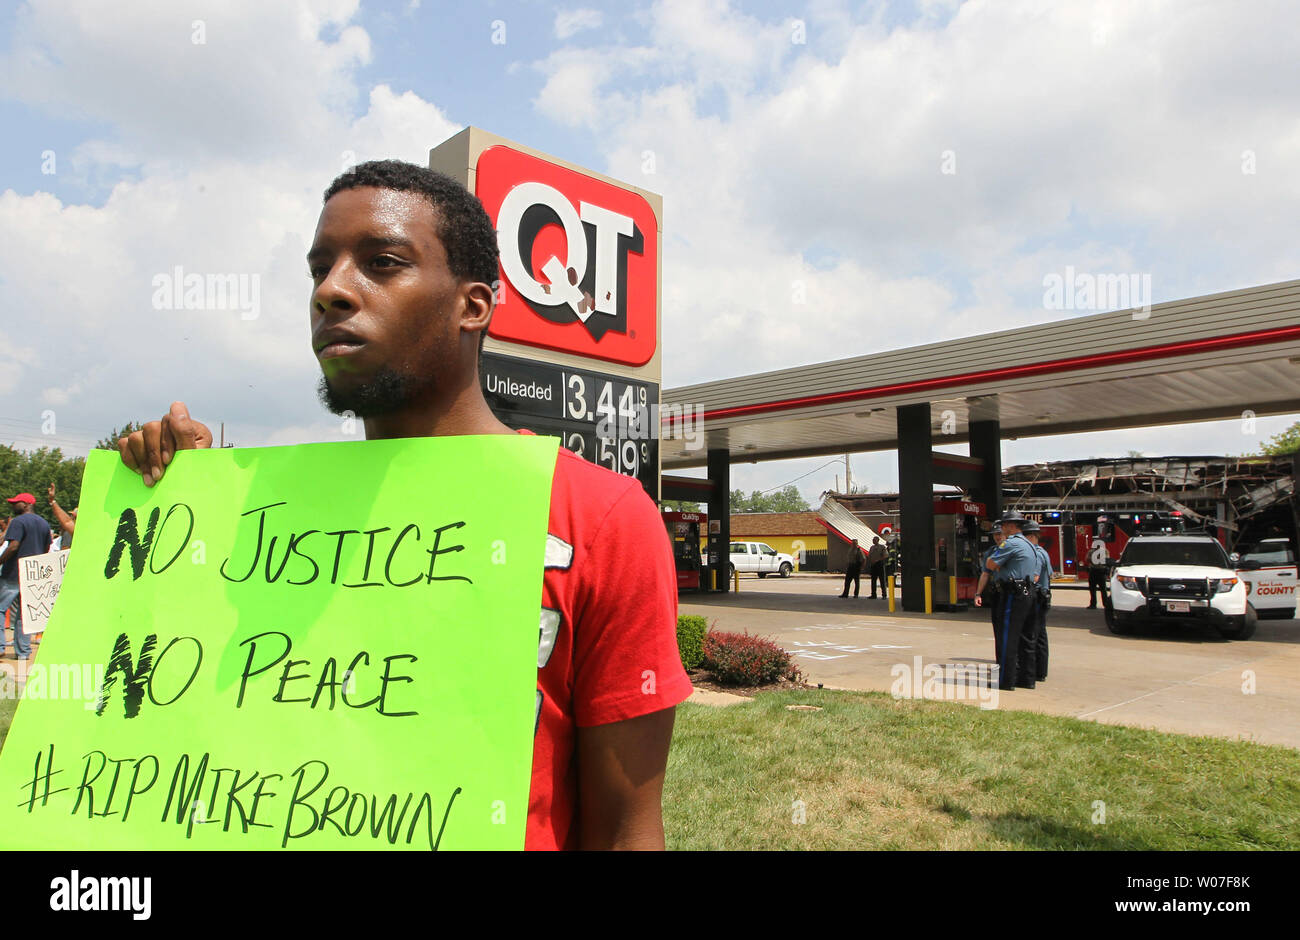 Protestor Allen Smith holds his sign up for passing traffic as he stands outside of the QuikTrip Gas station that was burned after a night of looting, rioting and arsons in Ferguson, Missouri on August 11, 2014. People are upset because of the Ferguson Police shooting and death of an unarmed black teenager Michael Brown on August 9, 2014. In all about 20 businesses sustained damage after a candlelight vigil turned violent.   UPI/Bill Greenblatt Stock Photo